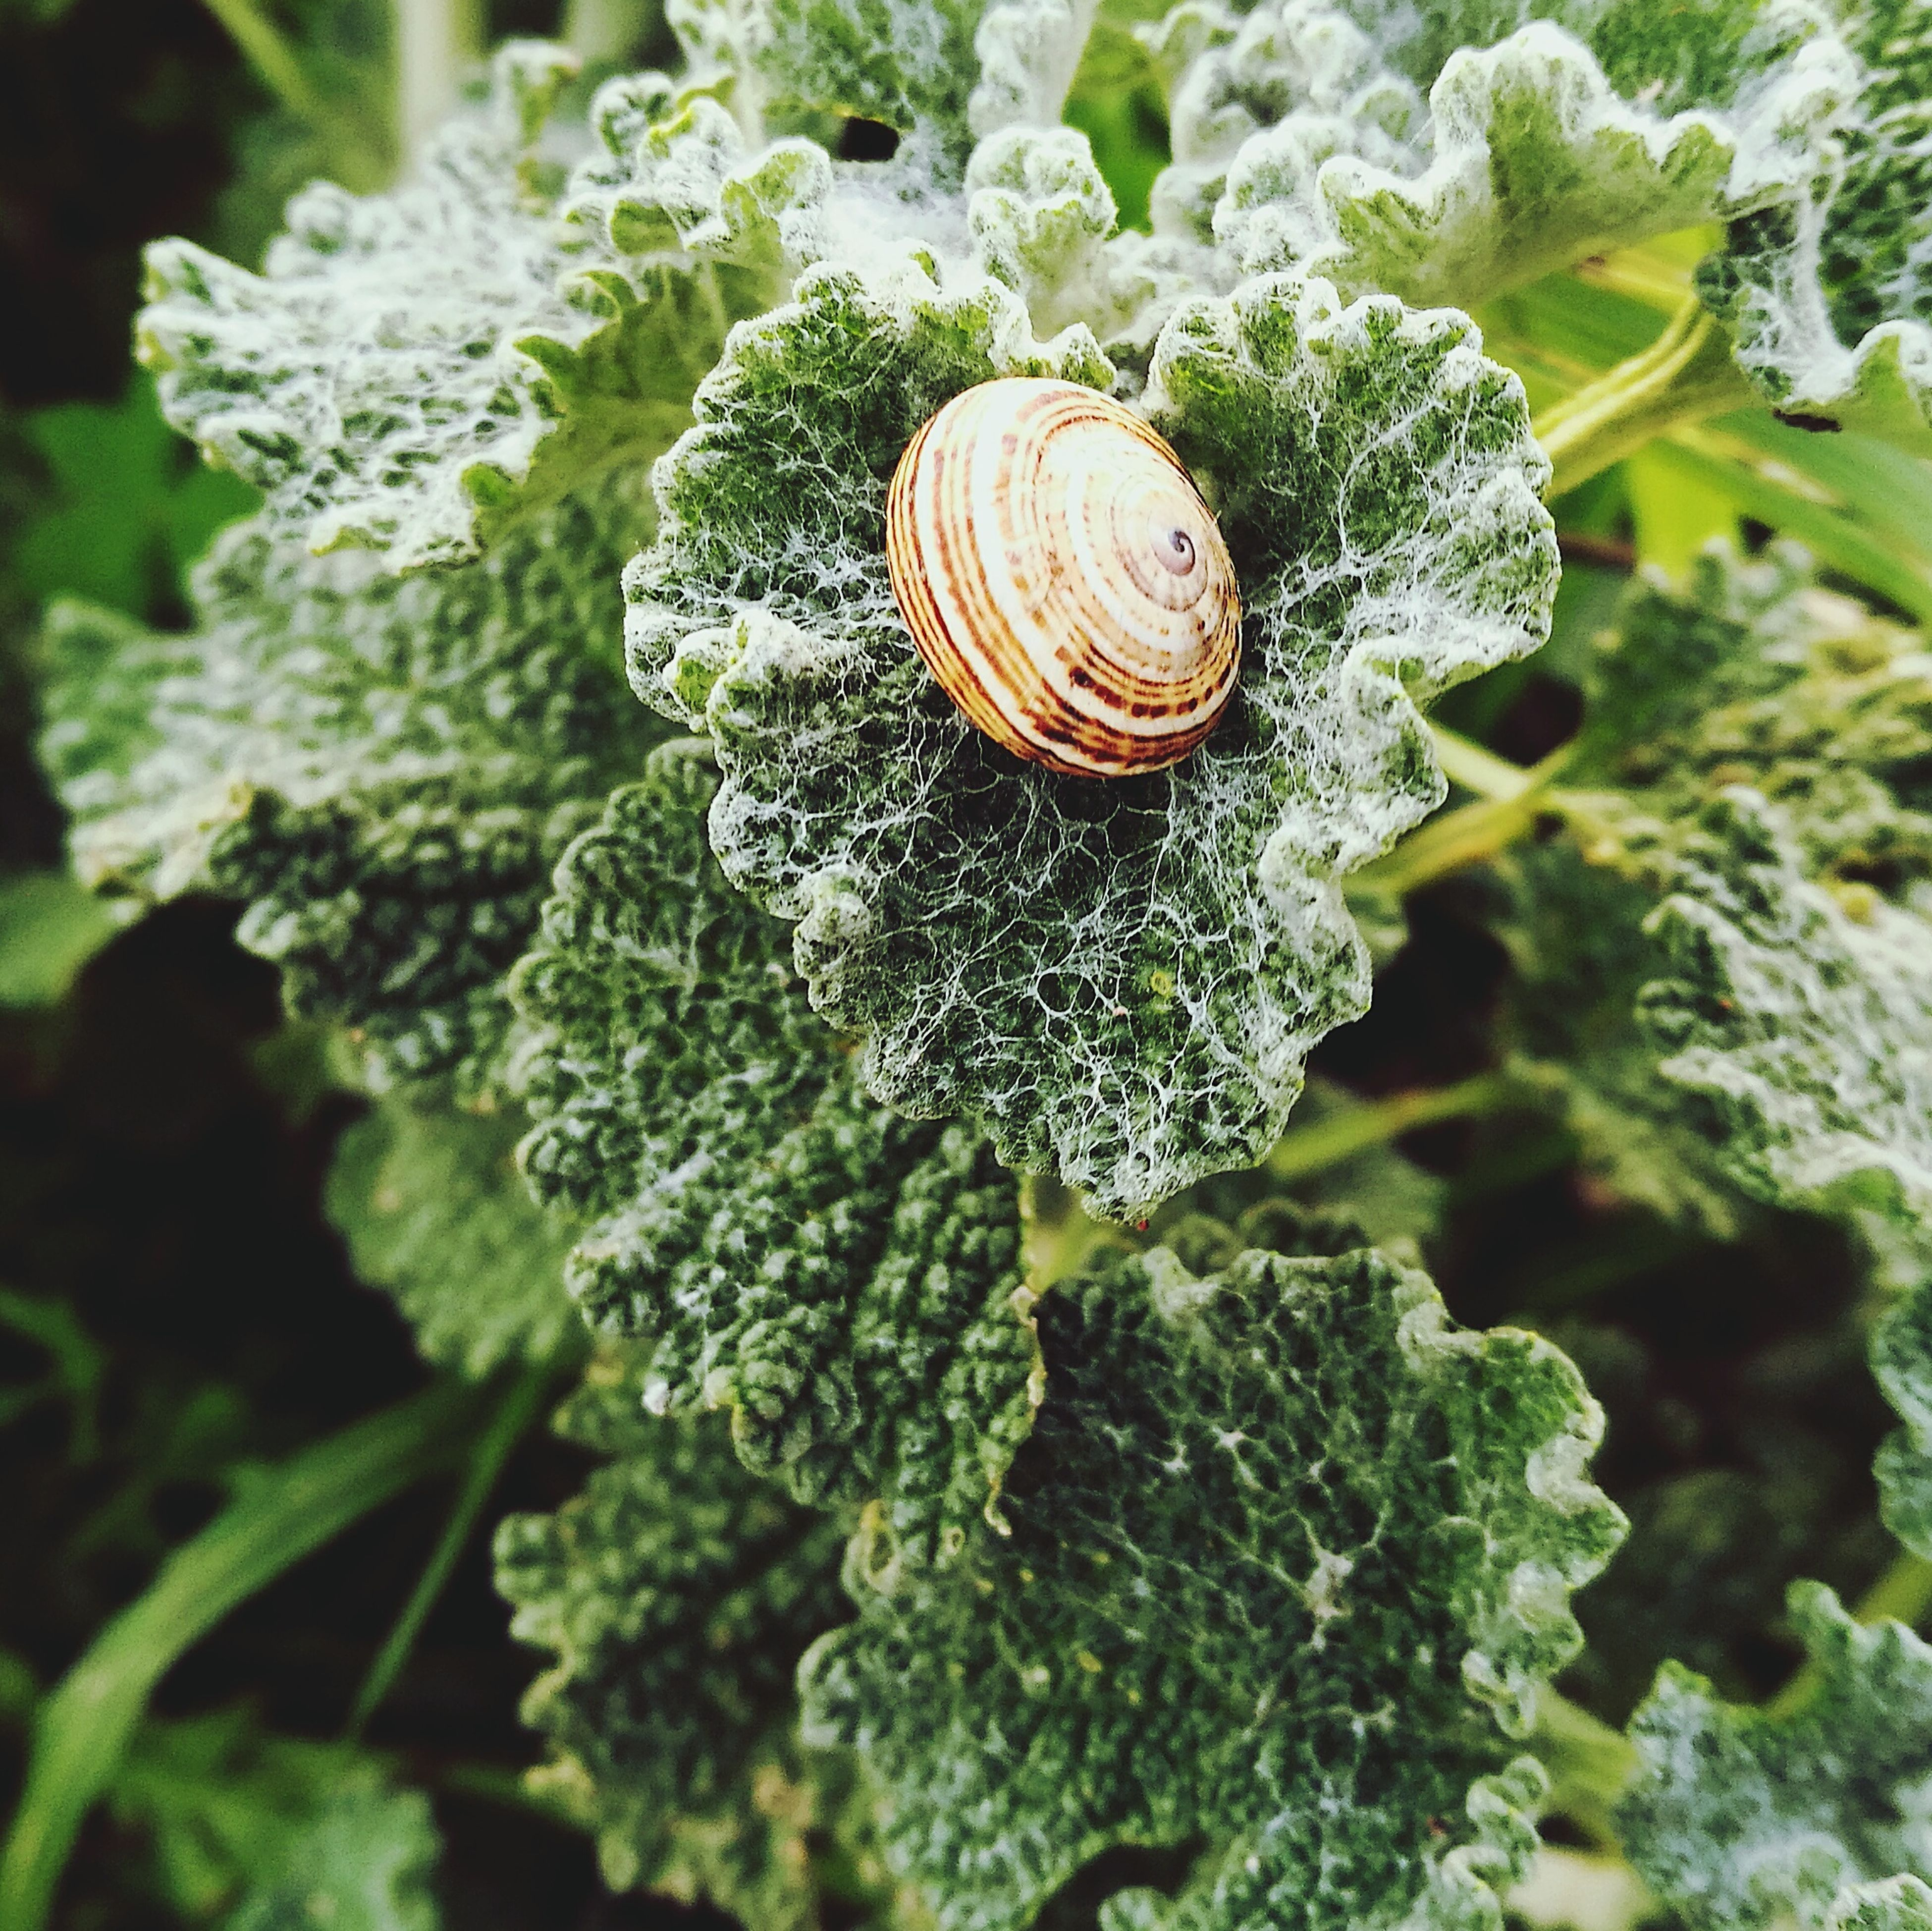 animal themes, snail, nature, gastropod, wildlife, one animal, animals in the wild, close-up, outdoors, leaf, fragility, no people, day